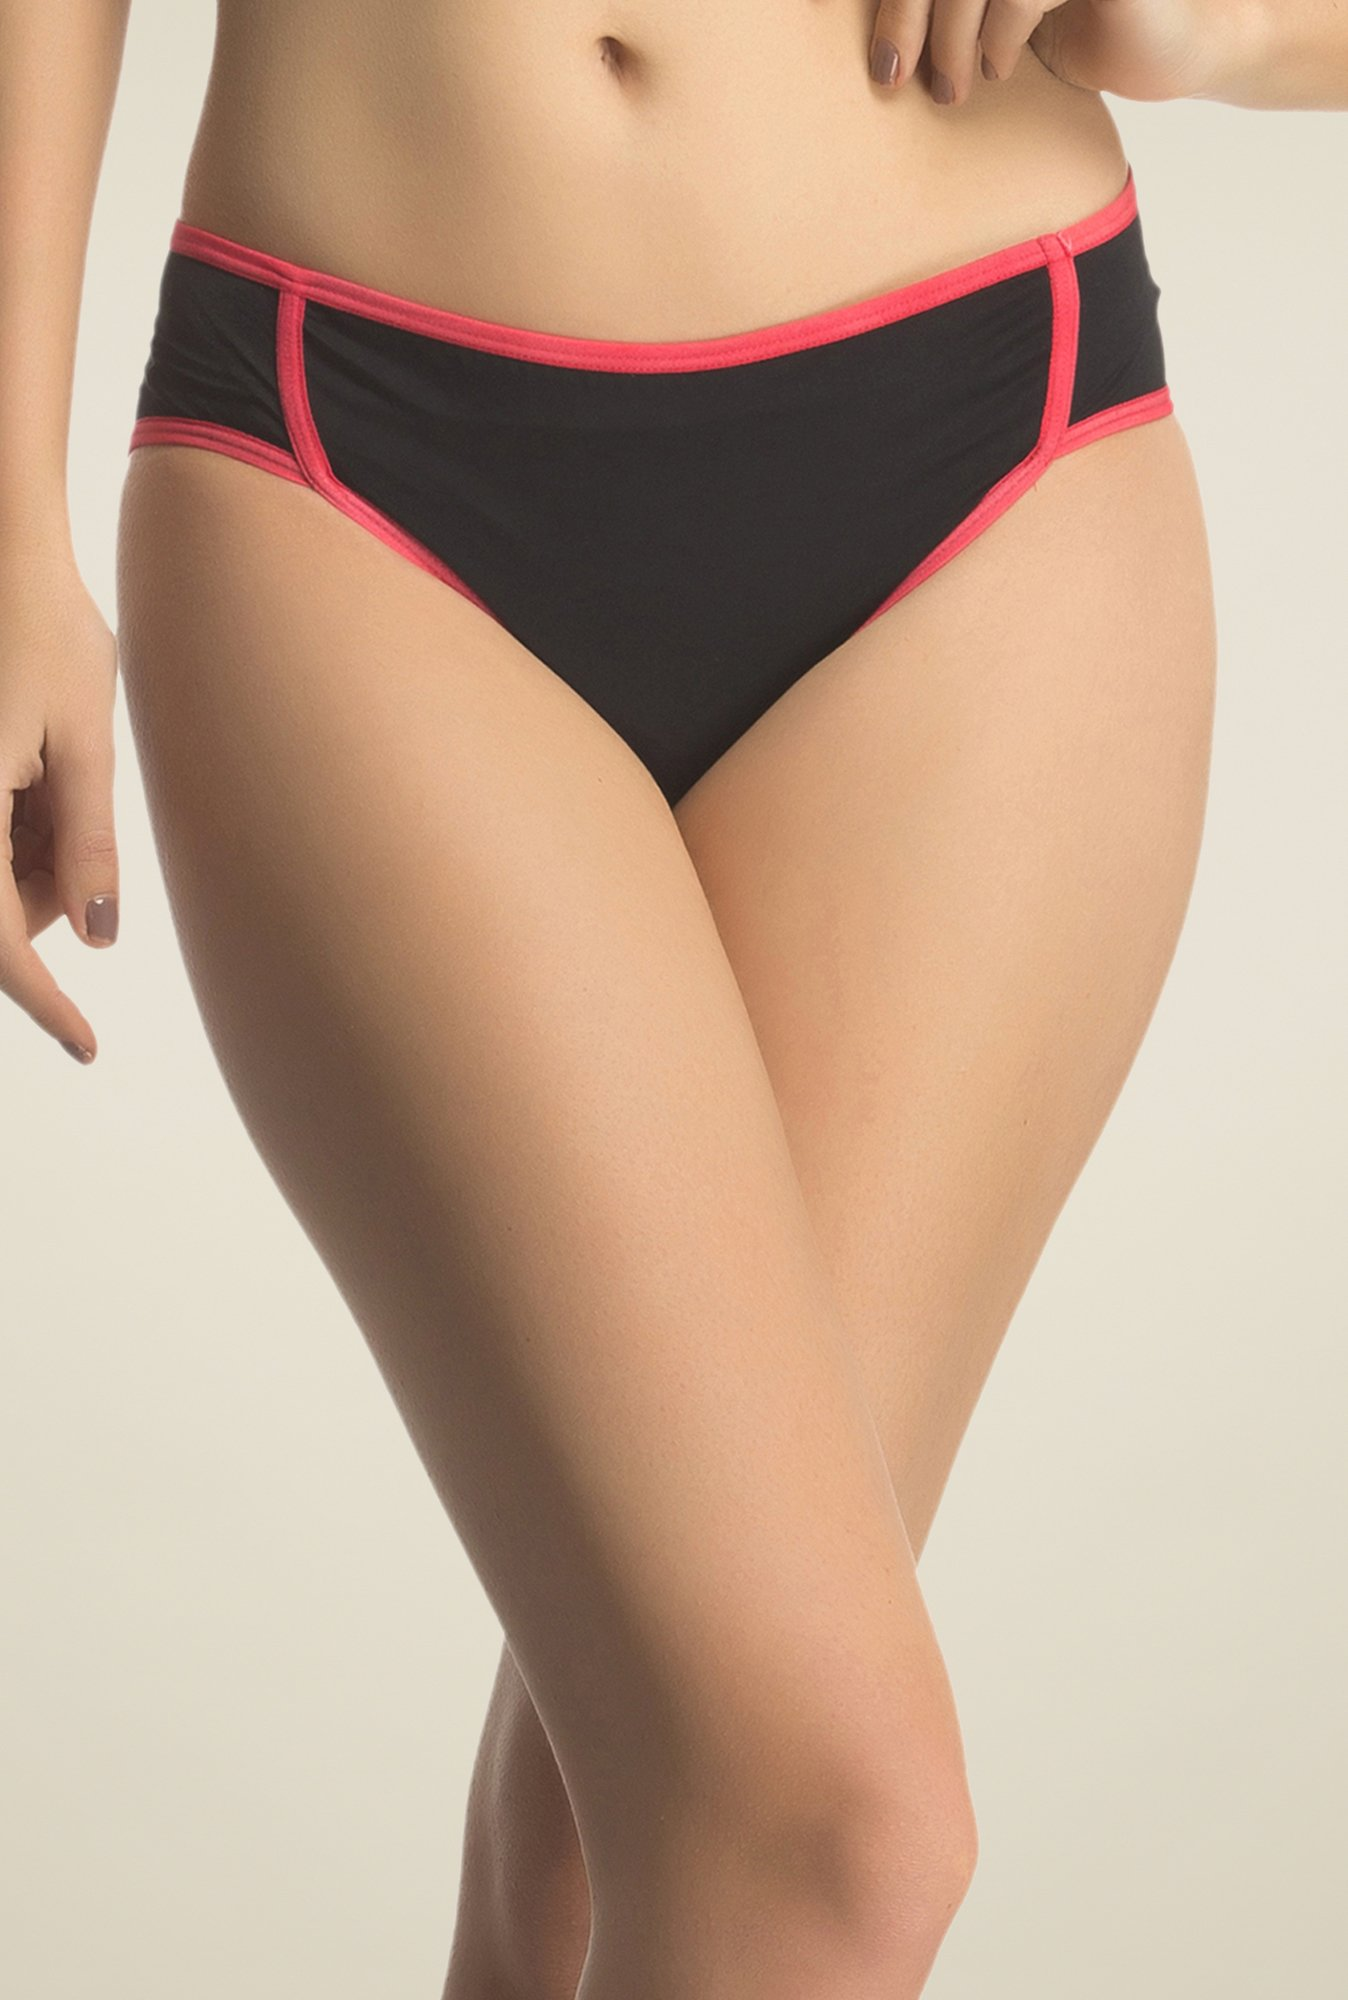 Clovia Black & Orange Strappy Bikini Panty